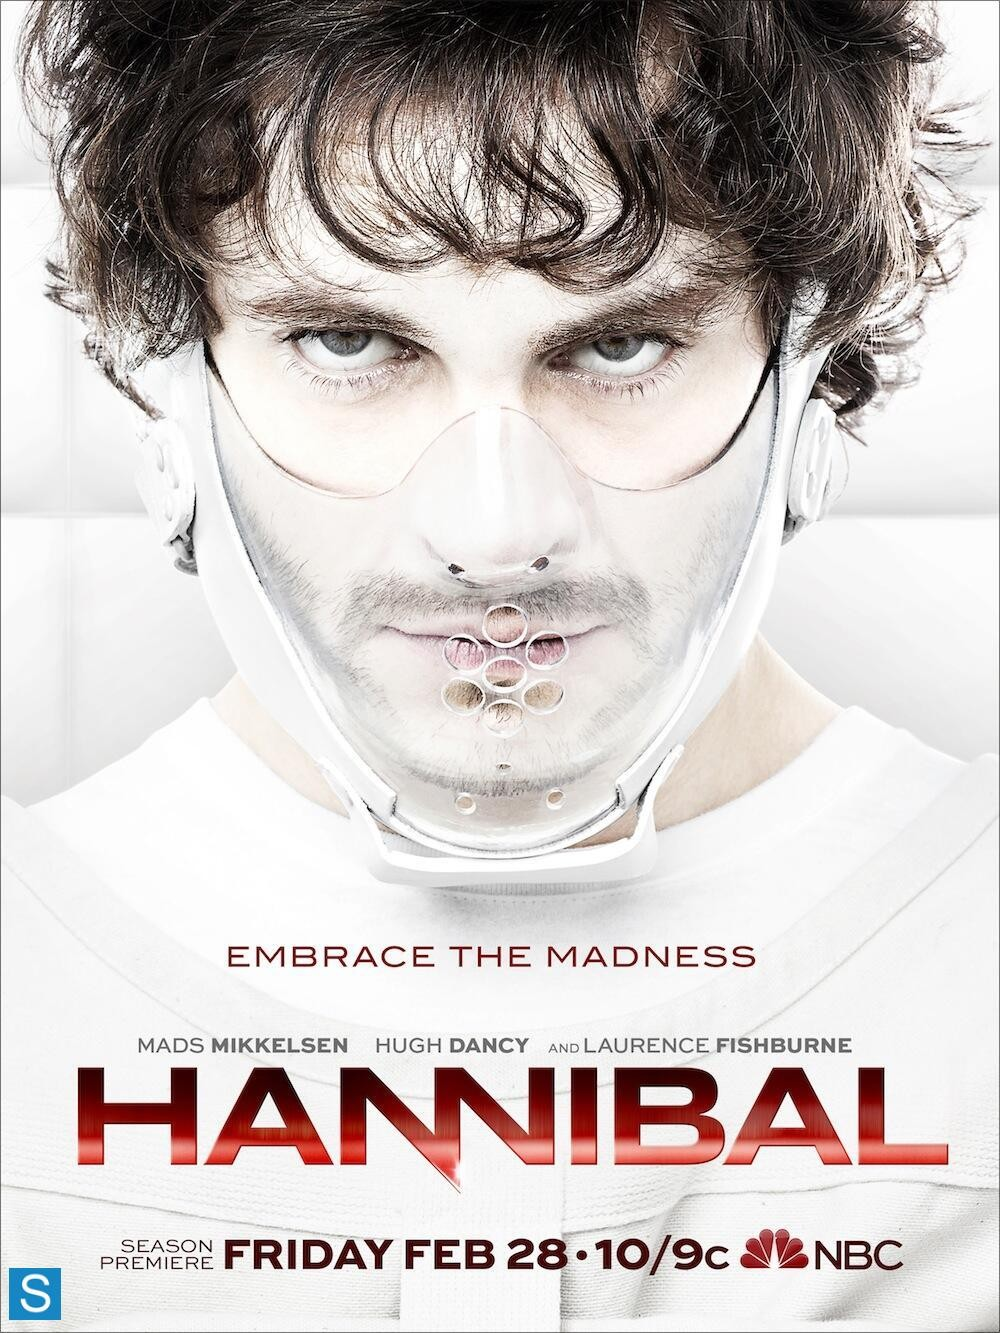 The Second Course Is Ready To Be Served With Full-Length Hannibal Trailer